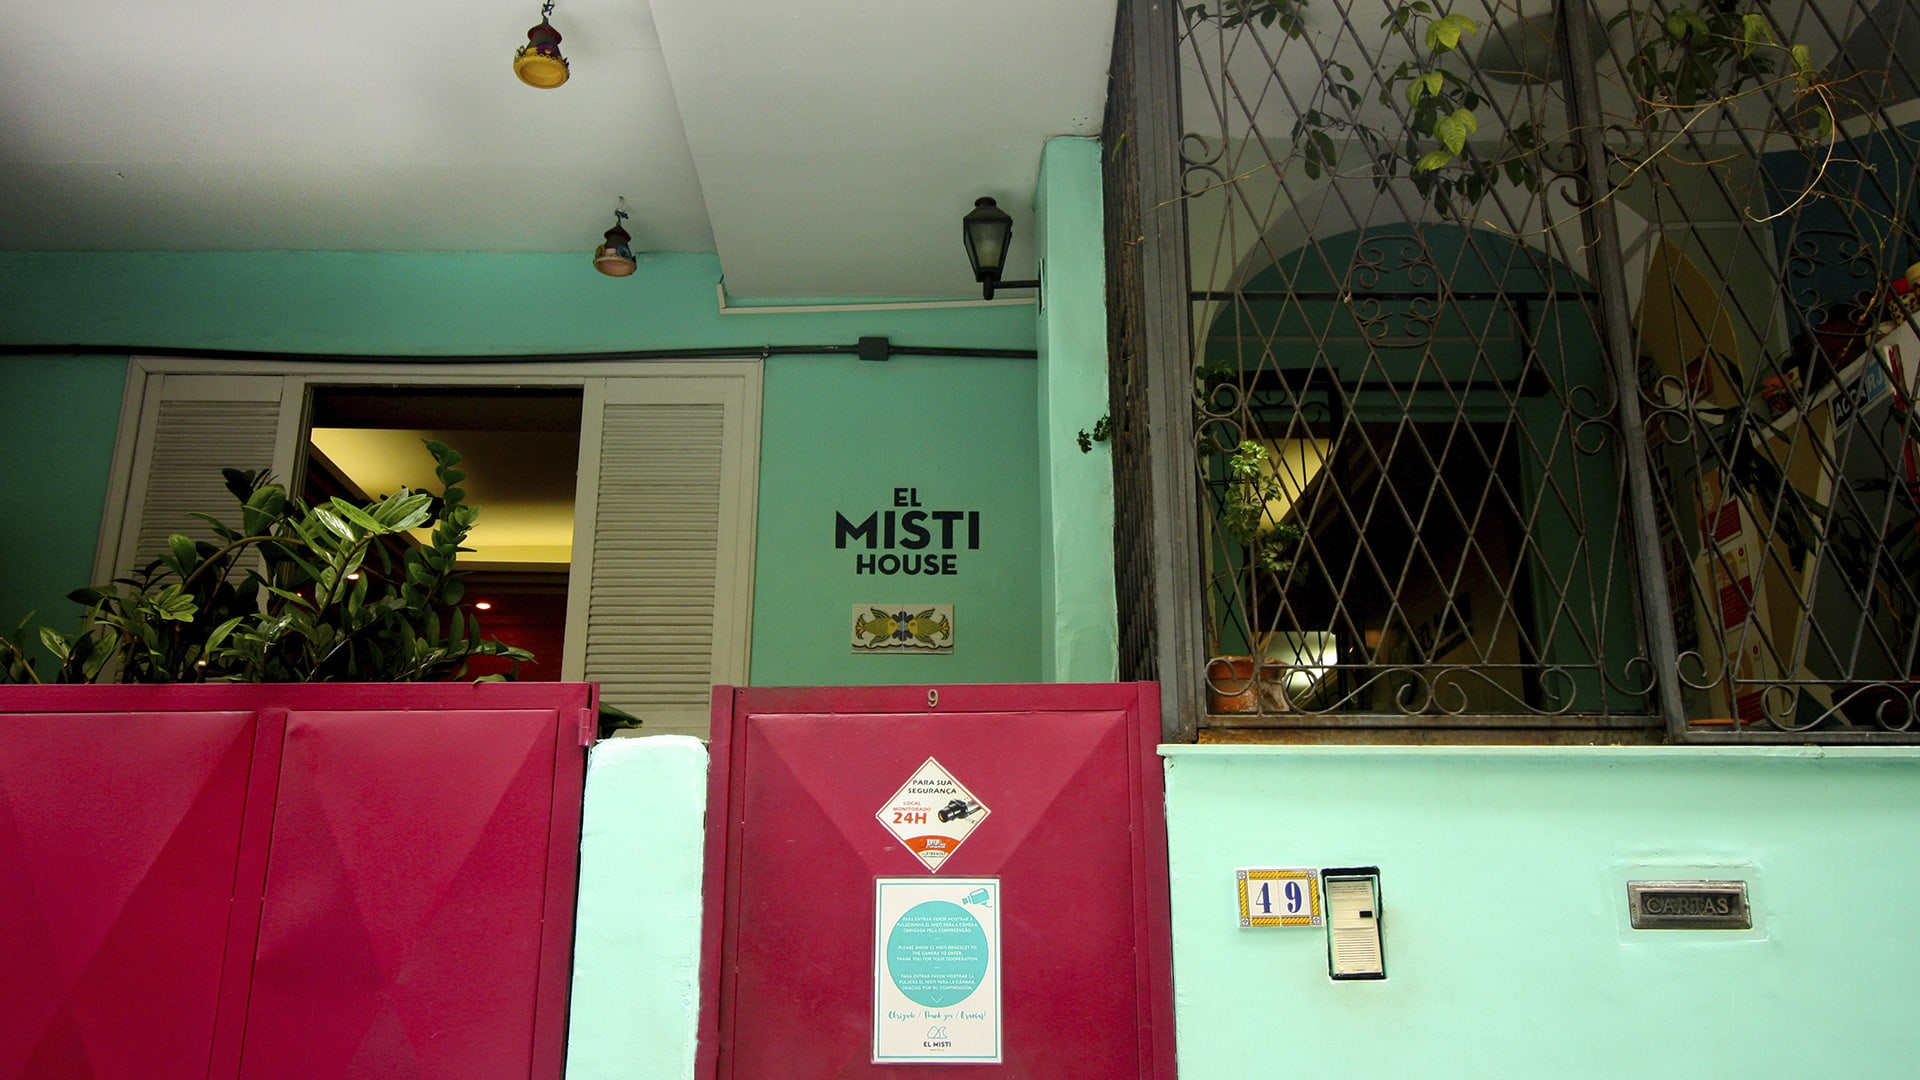 HOSTEL - El Misti House